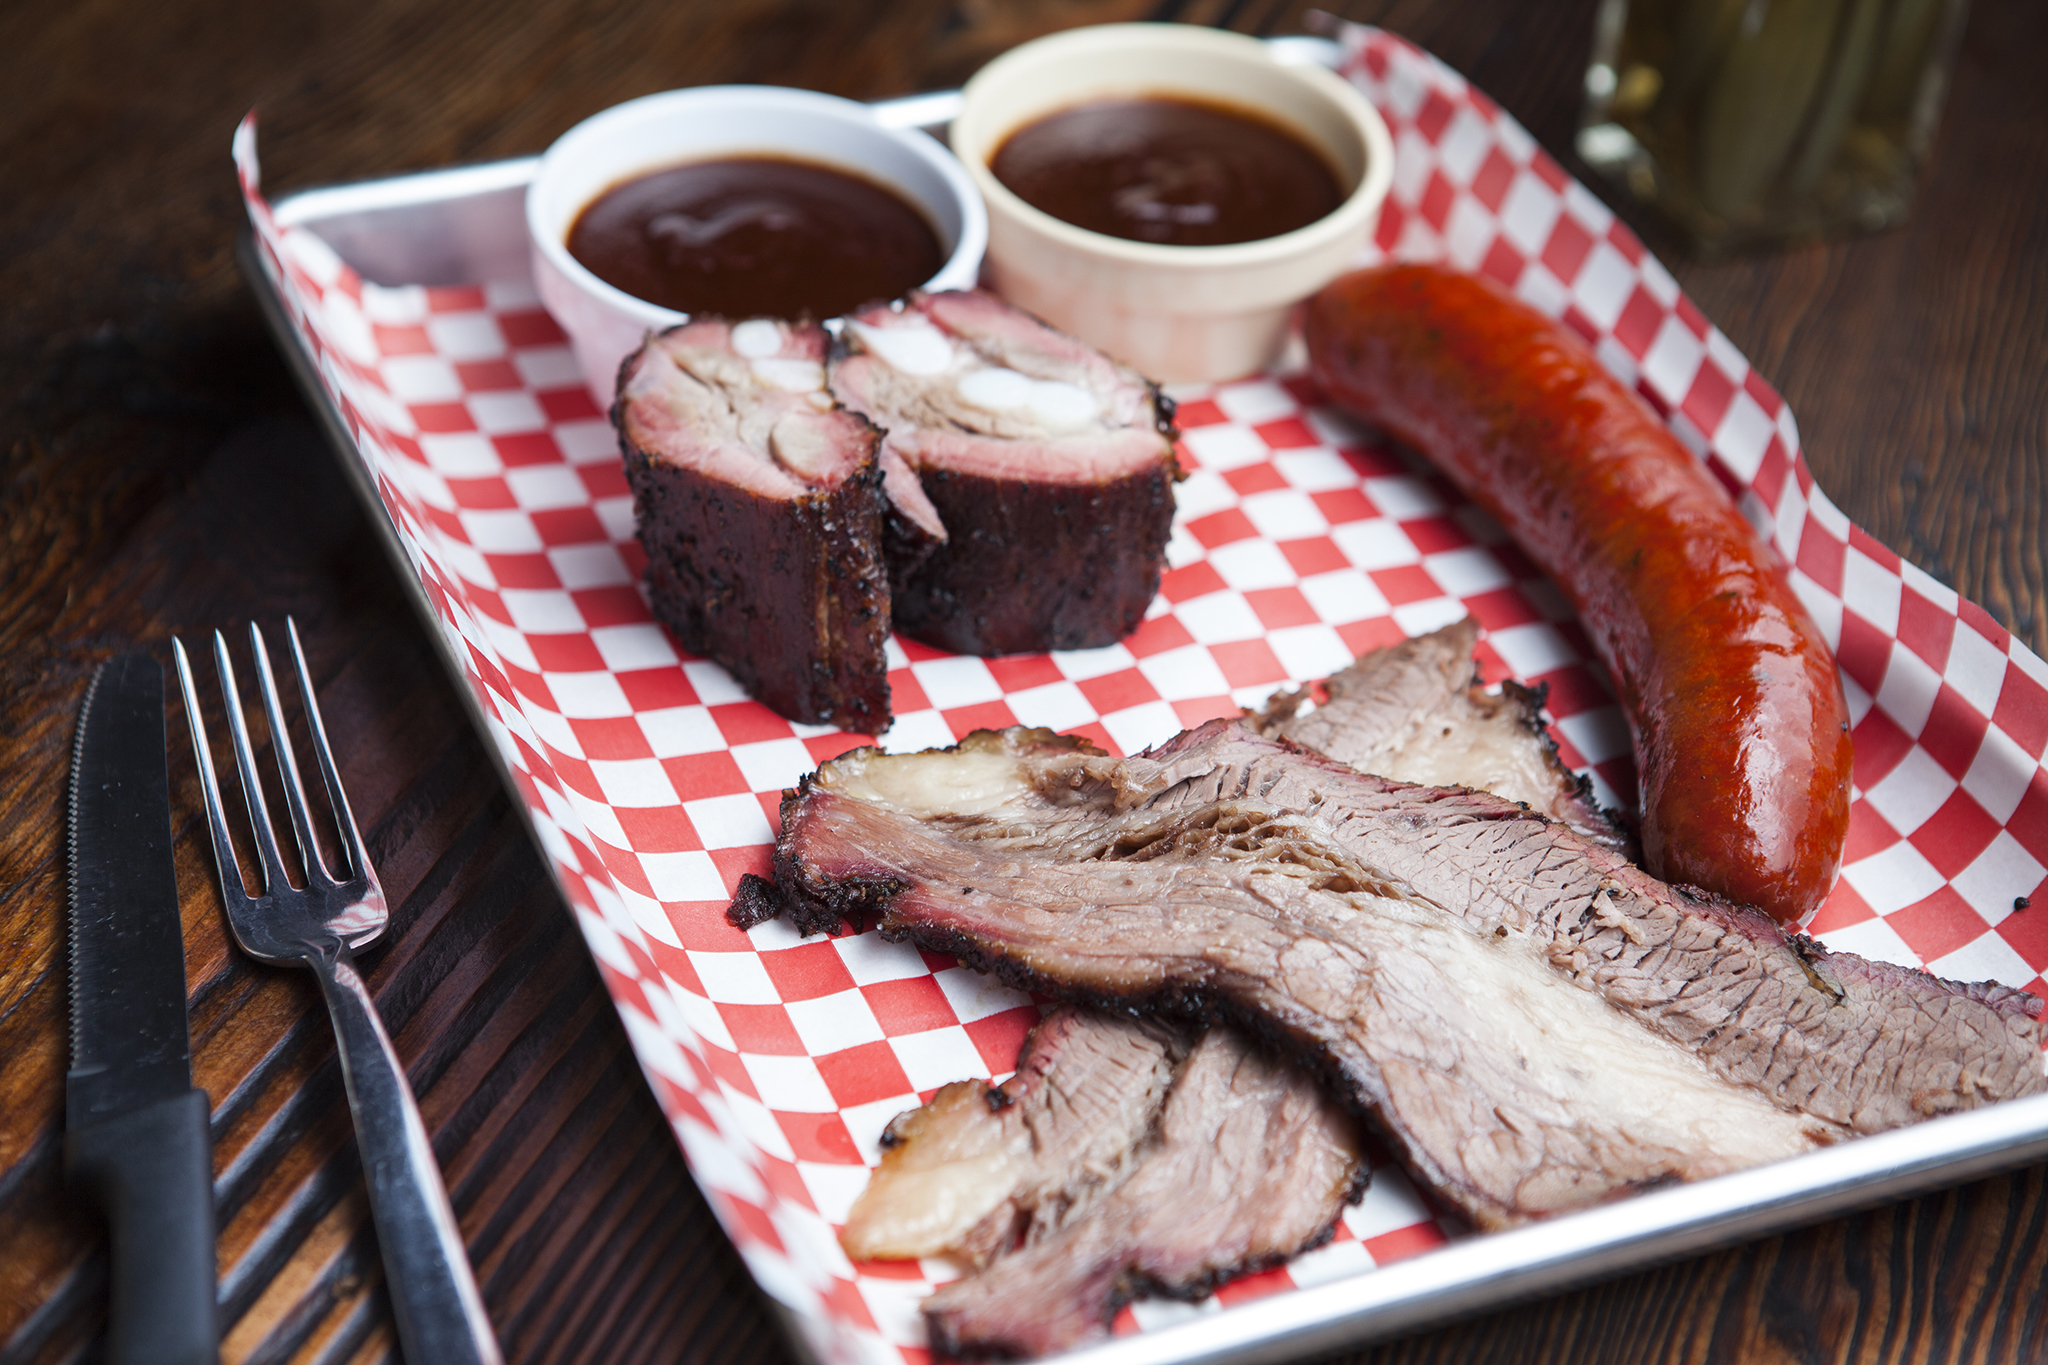 <p><em>Clockwise from top</em>: Brisket, rib tips and hot link at Bludso's Bar-&amp;-Que</p>